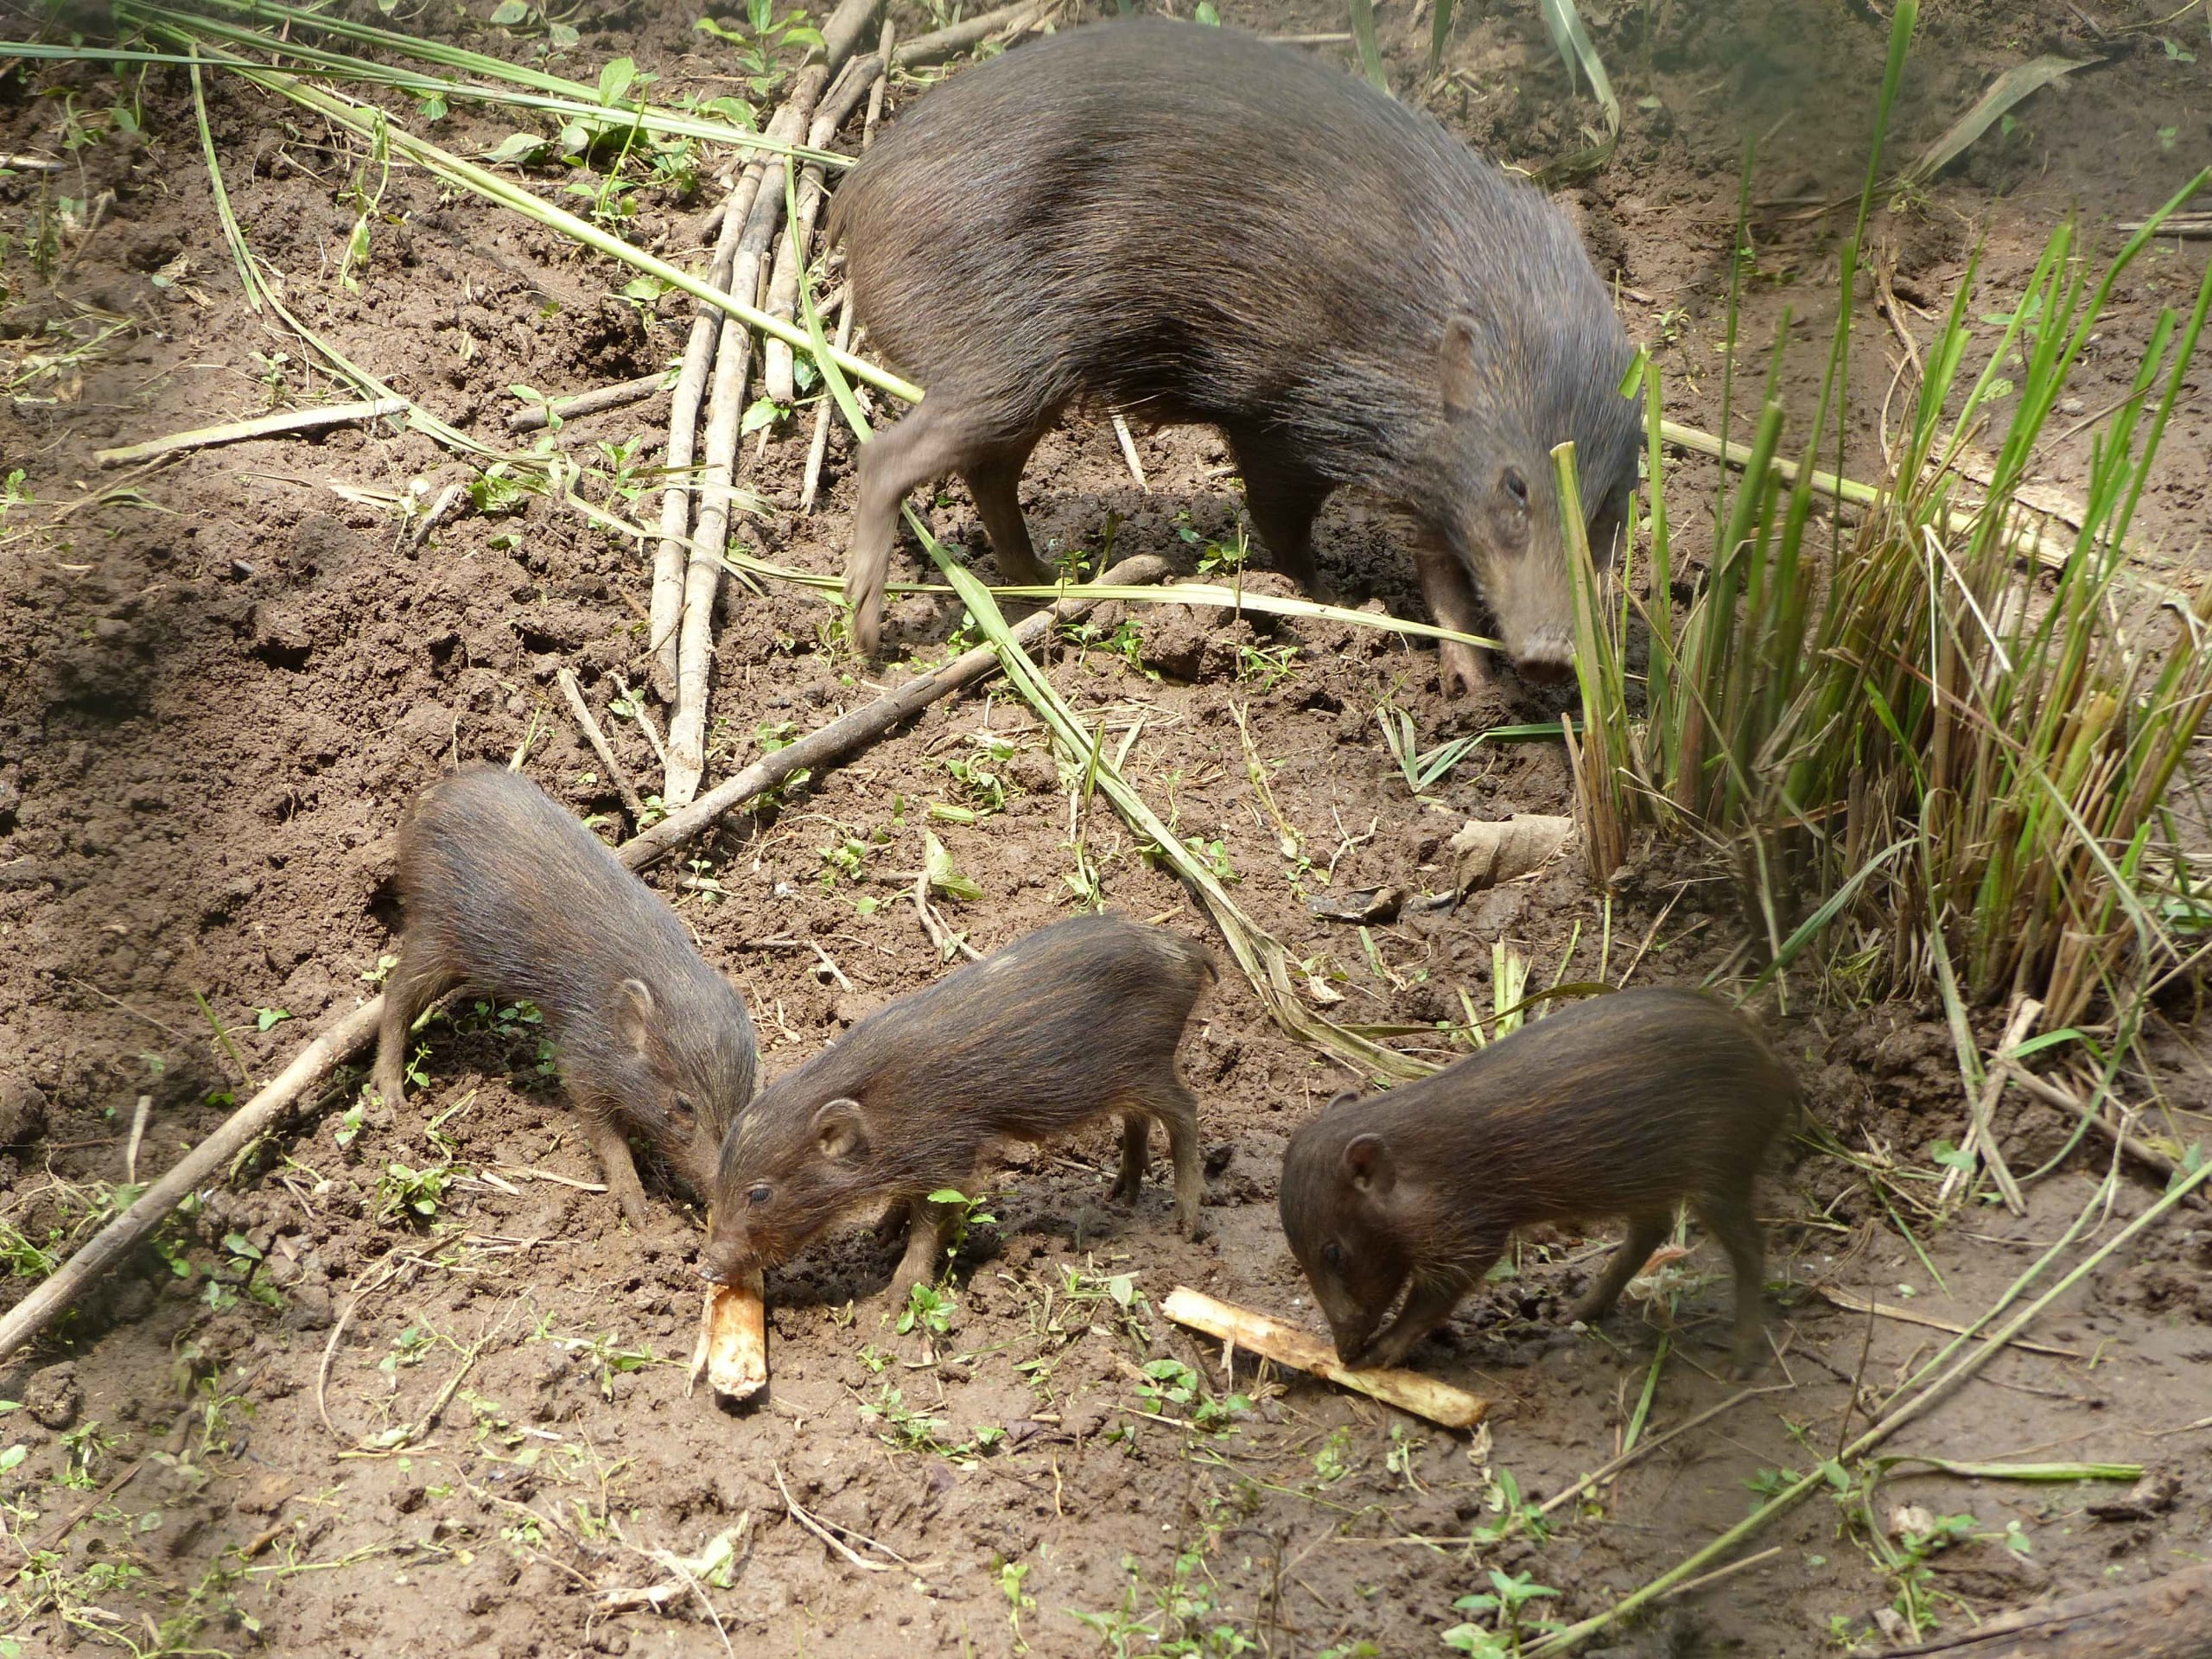 Pygmy hogs have a gestation period of around five months, after which they give birth to three to five young. Photo: Tammo Buss